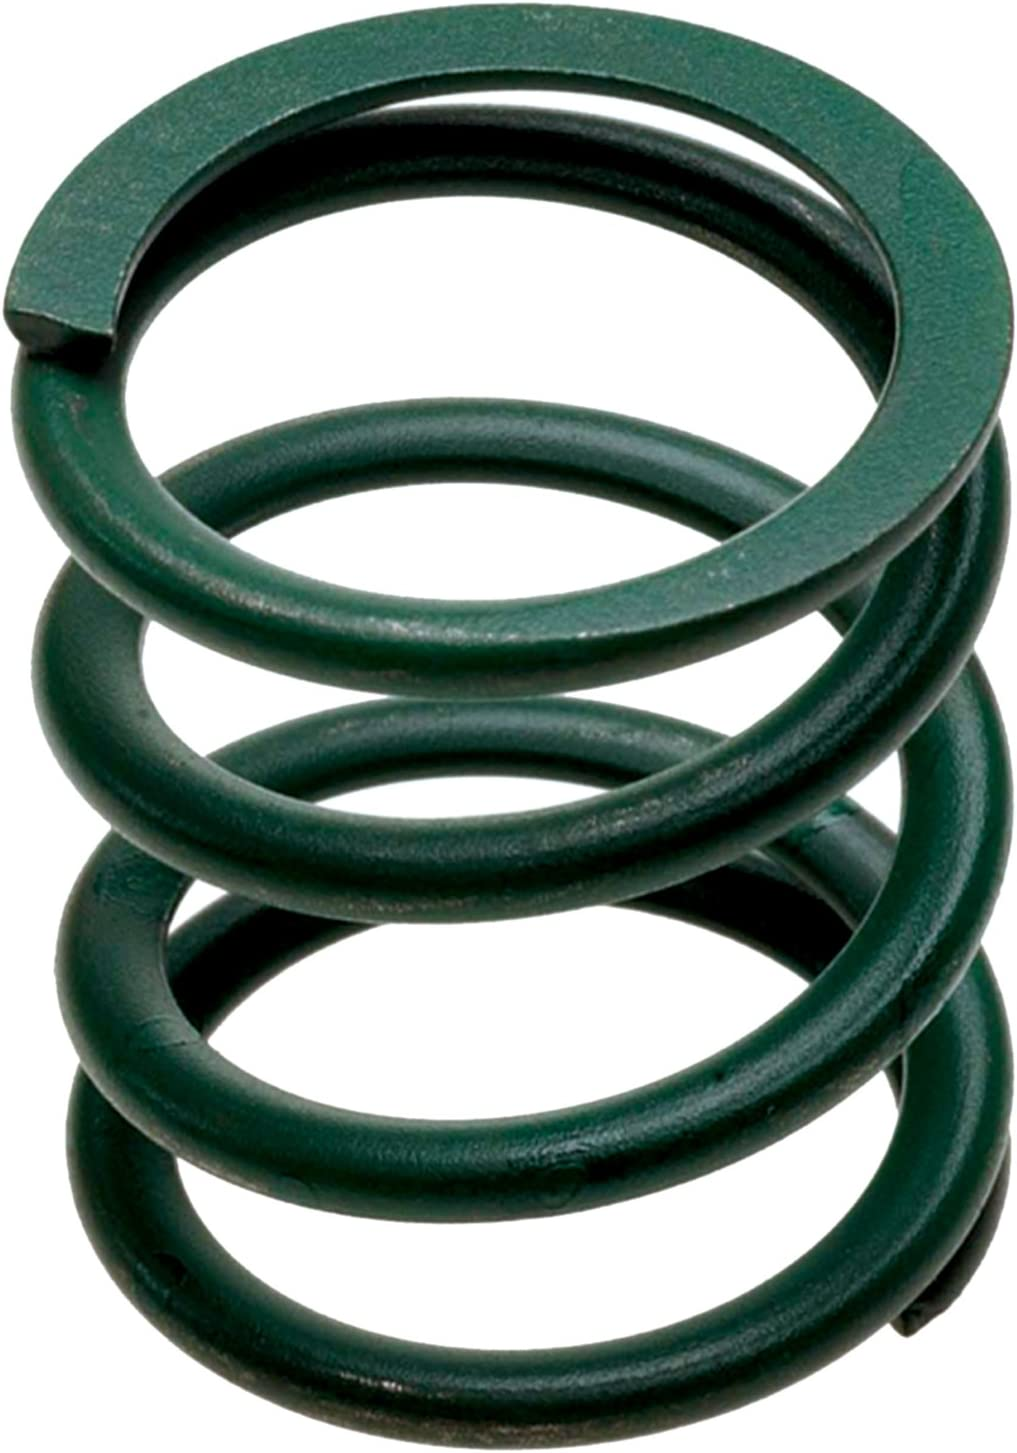 ACDelco 24260390 GM Original Equipment Automatic Transmission 2-6 Clutch Spring